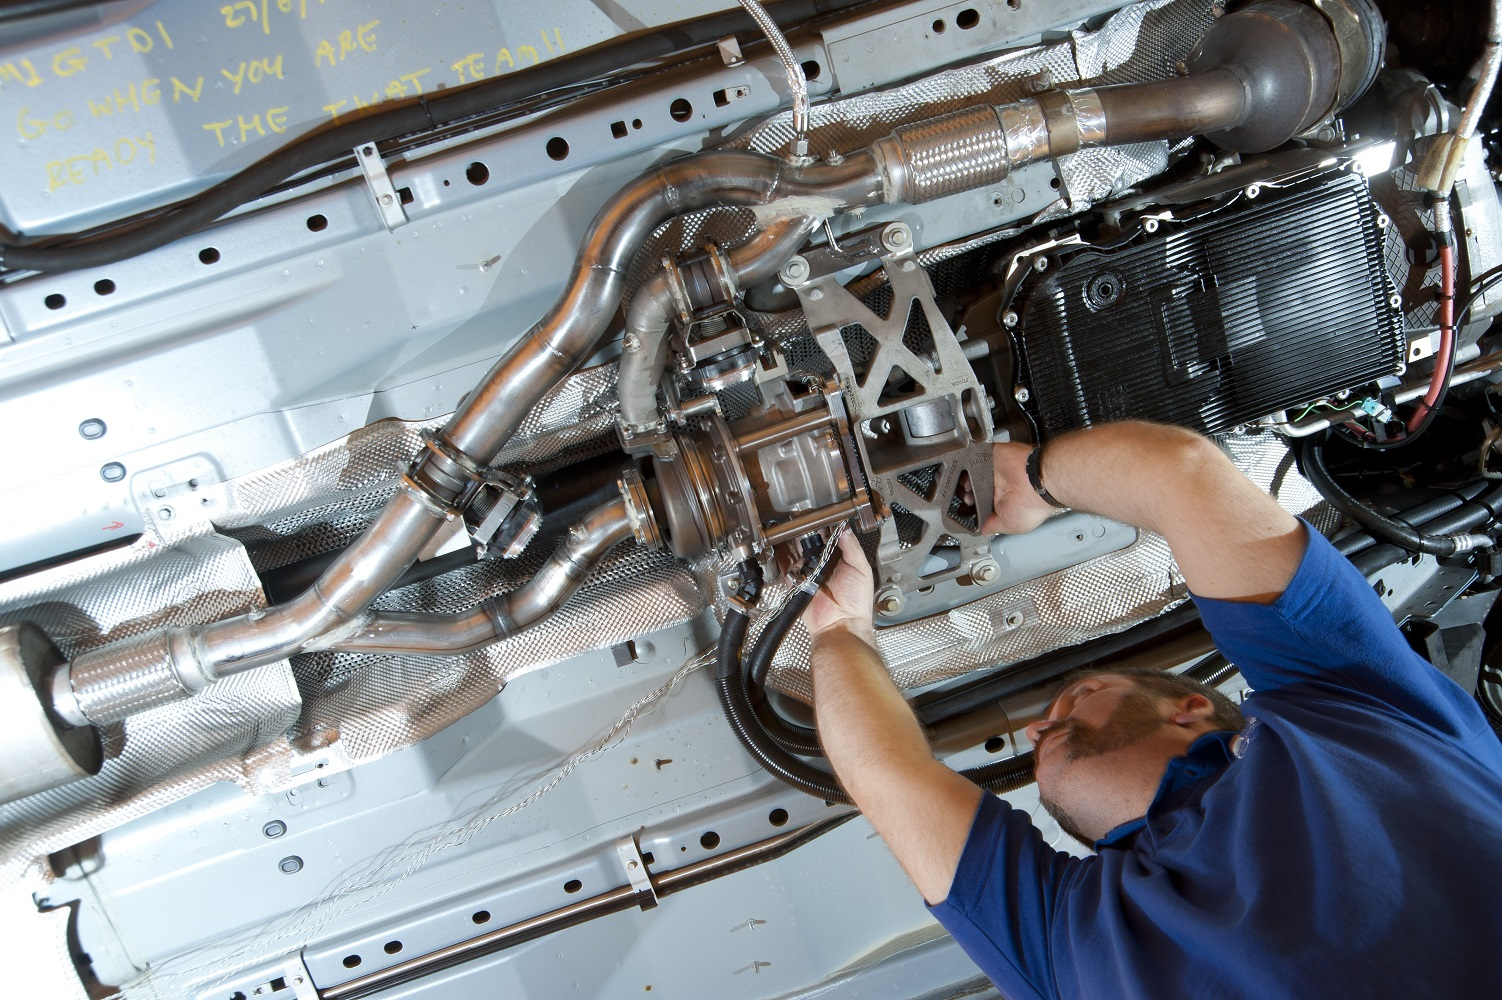 CPT TIGERS turbine integrated gas energy recovery system has also been applied to the Wrightbus led research programme supported by the UK Technology Strategy Board